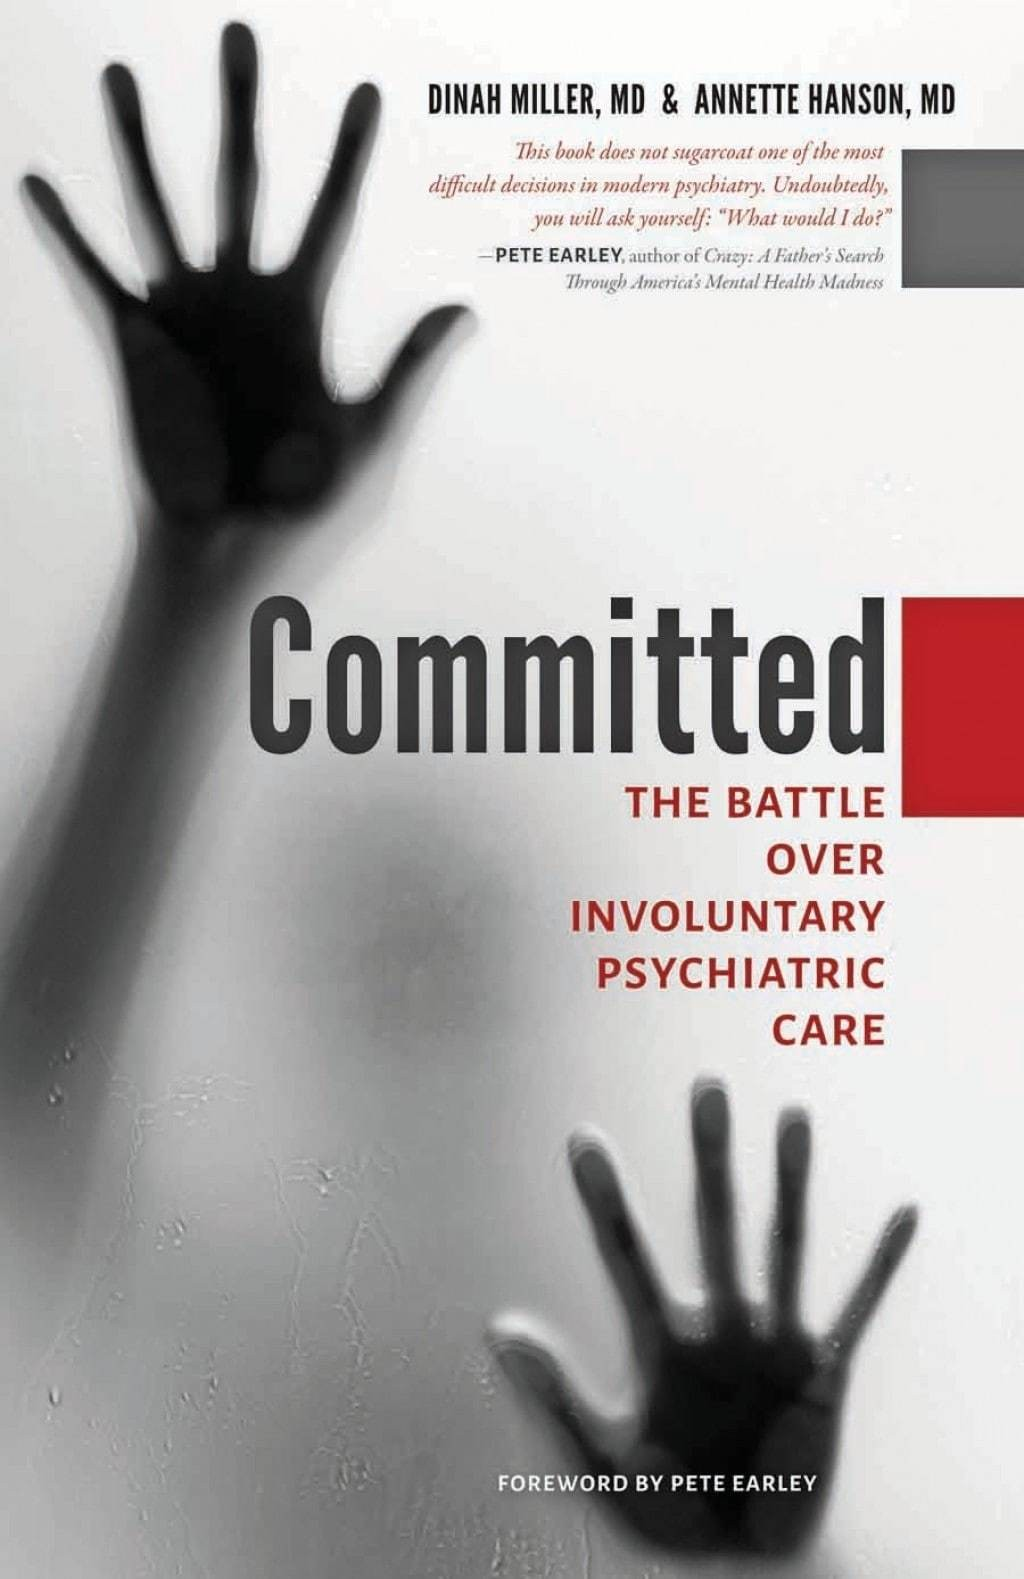 The heated battle over when to commit a patient involuntarily to psychiatric care